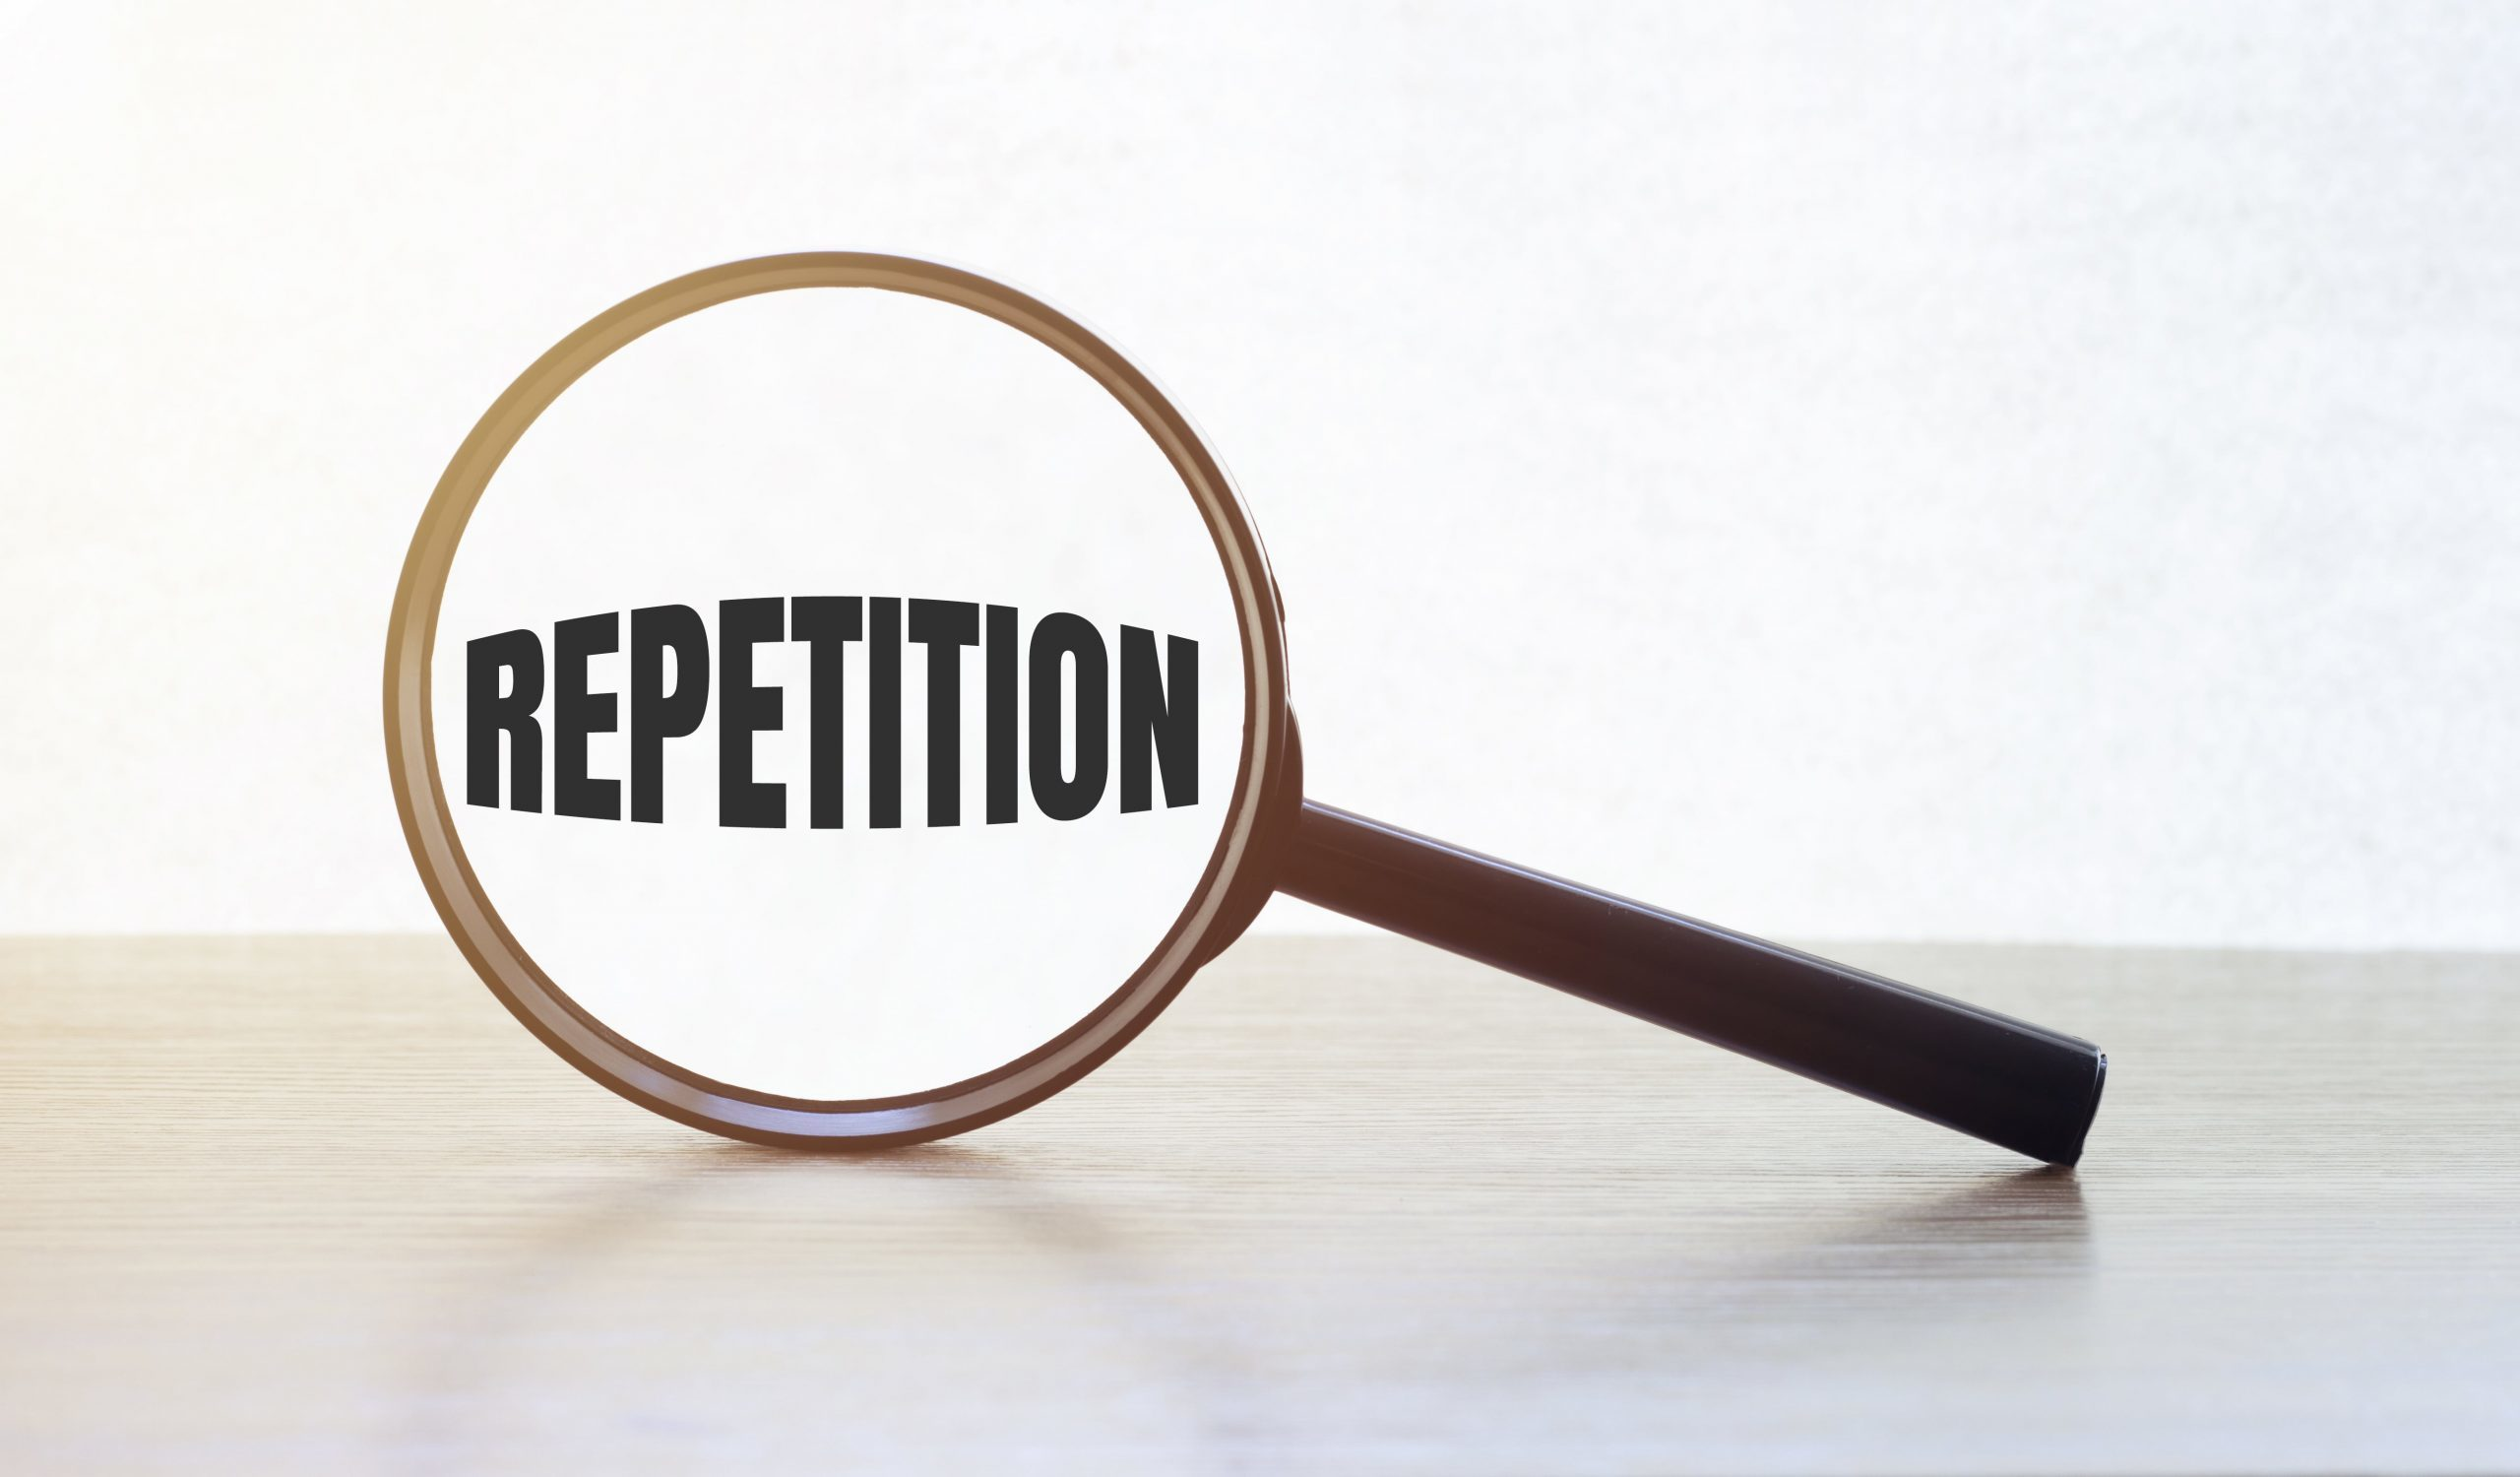 The Rule of Repetition